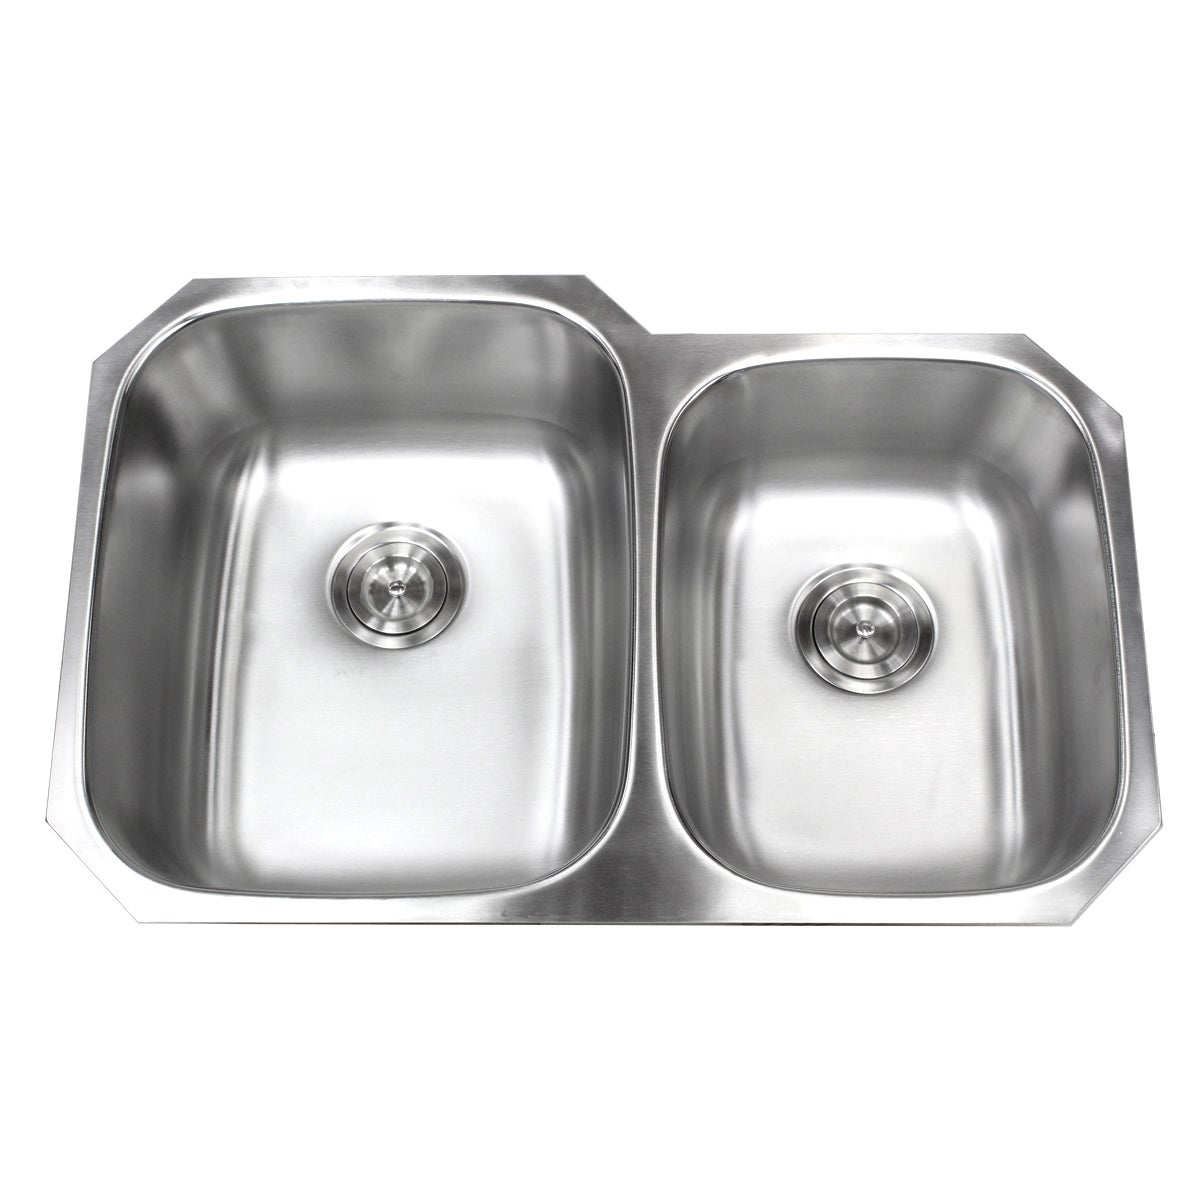 32-inch Double 60/40 Bowl 18 Gauge Undermount Stainless S...